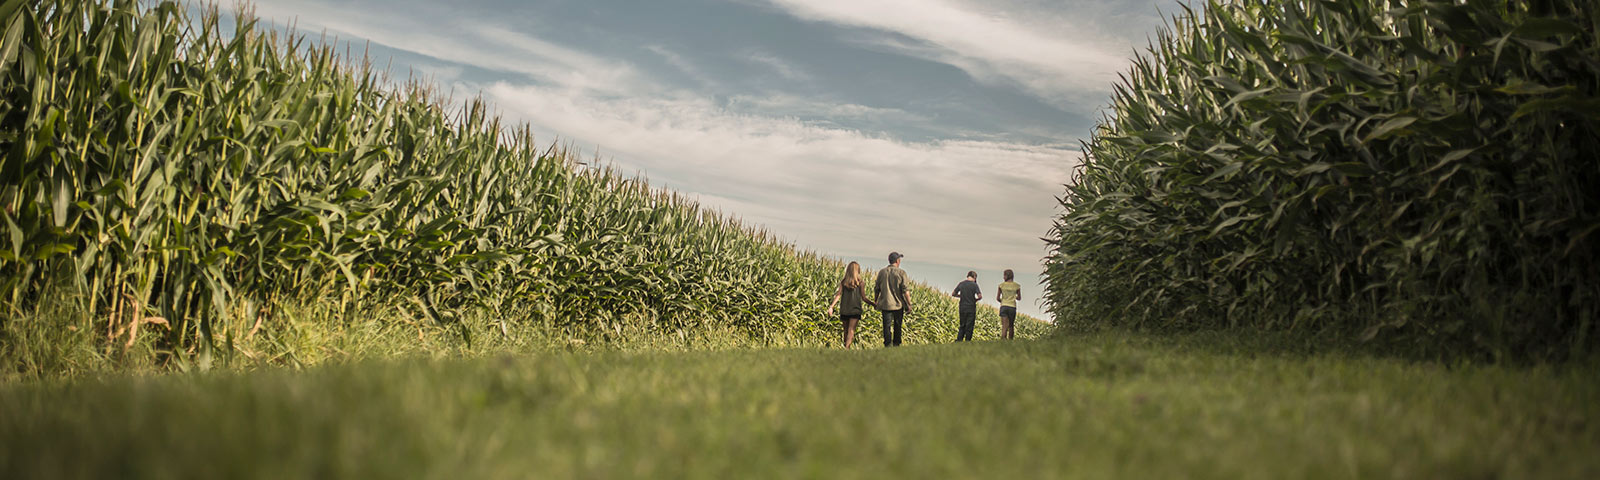 Family and corn field